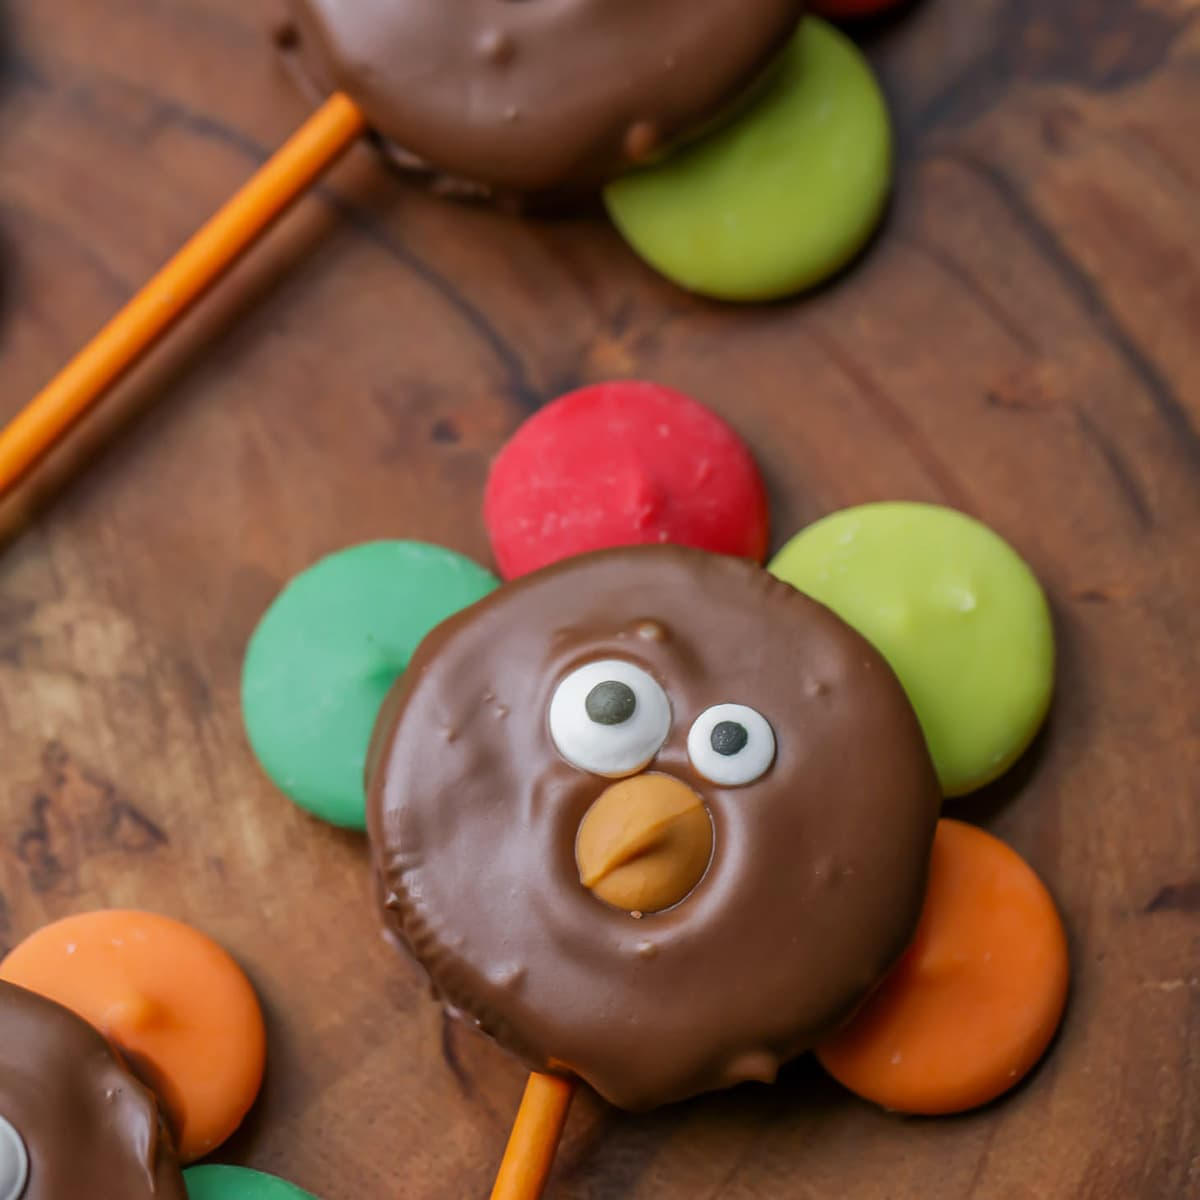 Oreo Turkey cookies - a great holiday treat